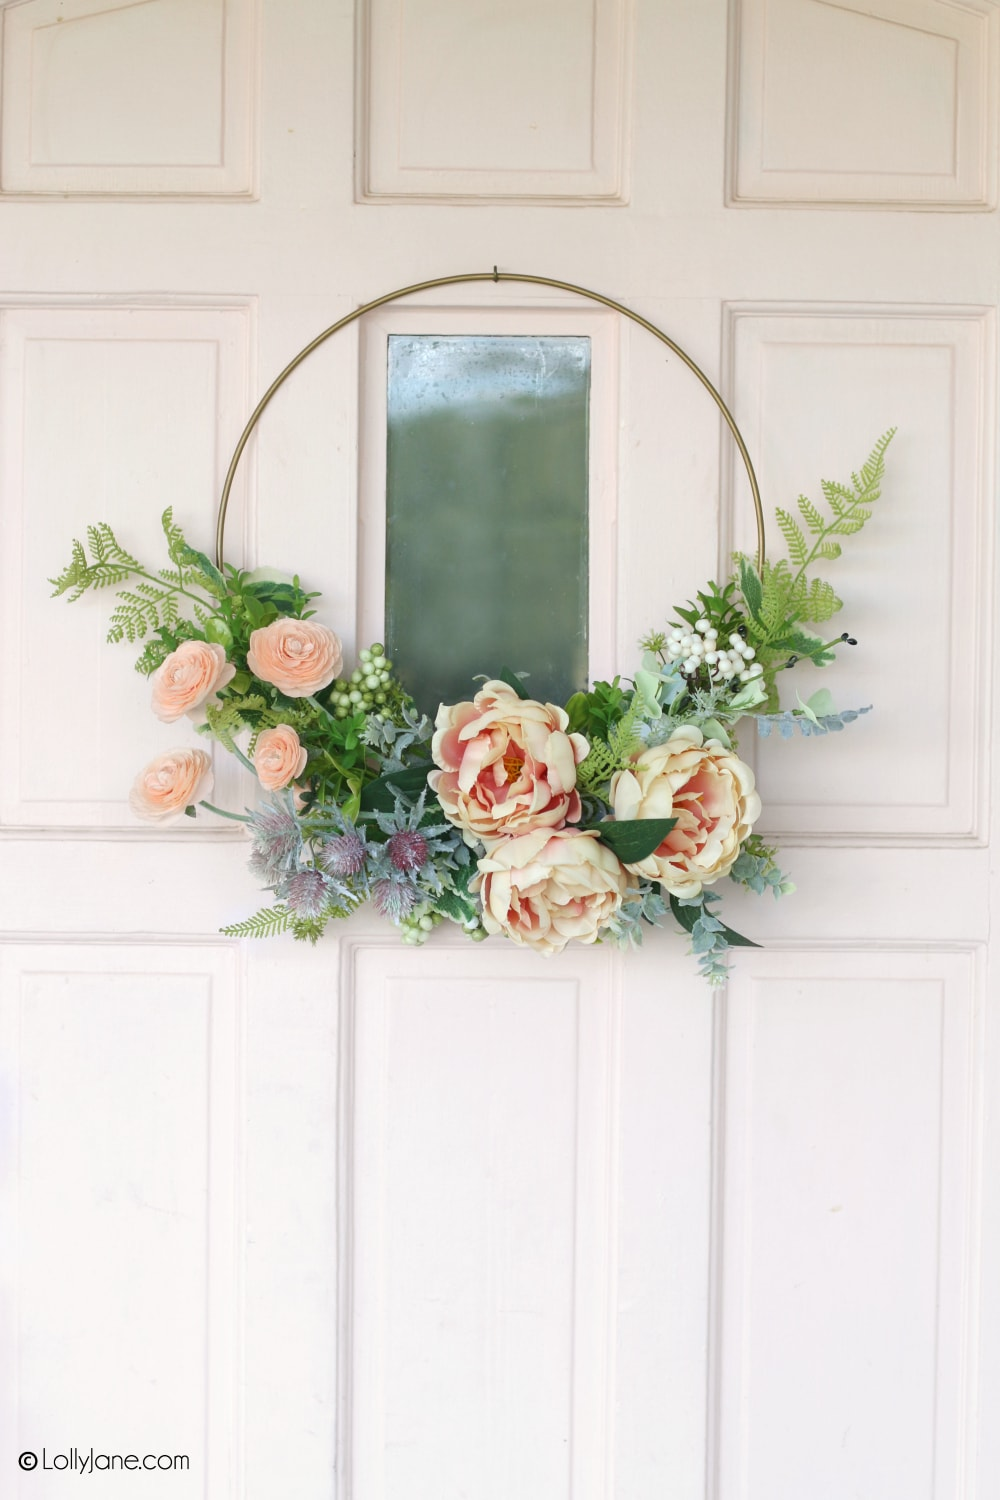 Beautiful handmade Modern Floral Wreath... and made in minutes! Perfect DIY project for beginning crafters! Display on your door to welcome spring or Easter into your home! #diy #springwreath #Eastercraft #wreath #moderndecor #floral